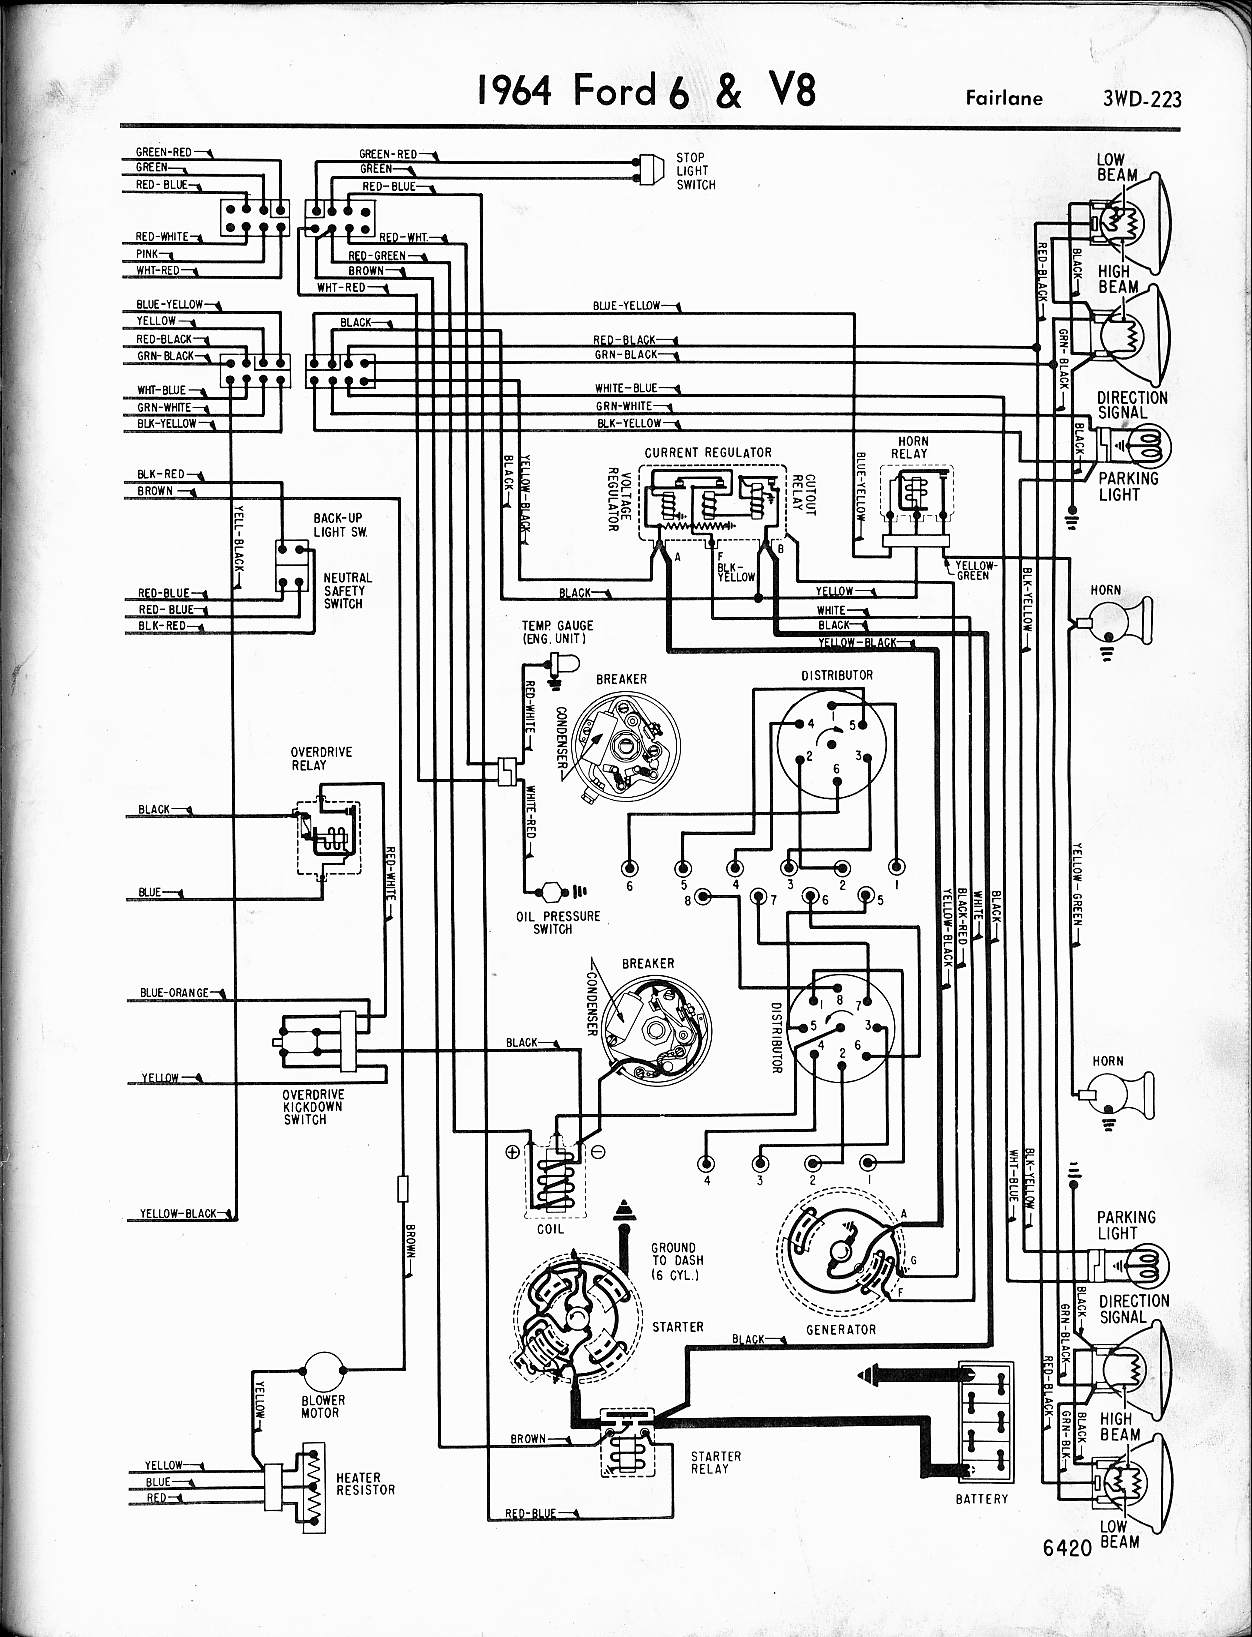 1957 Ford Wiring Diagram Data 1974 F250 Ltd Radio